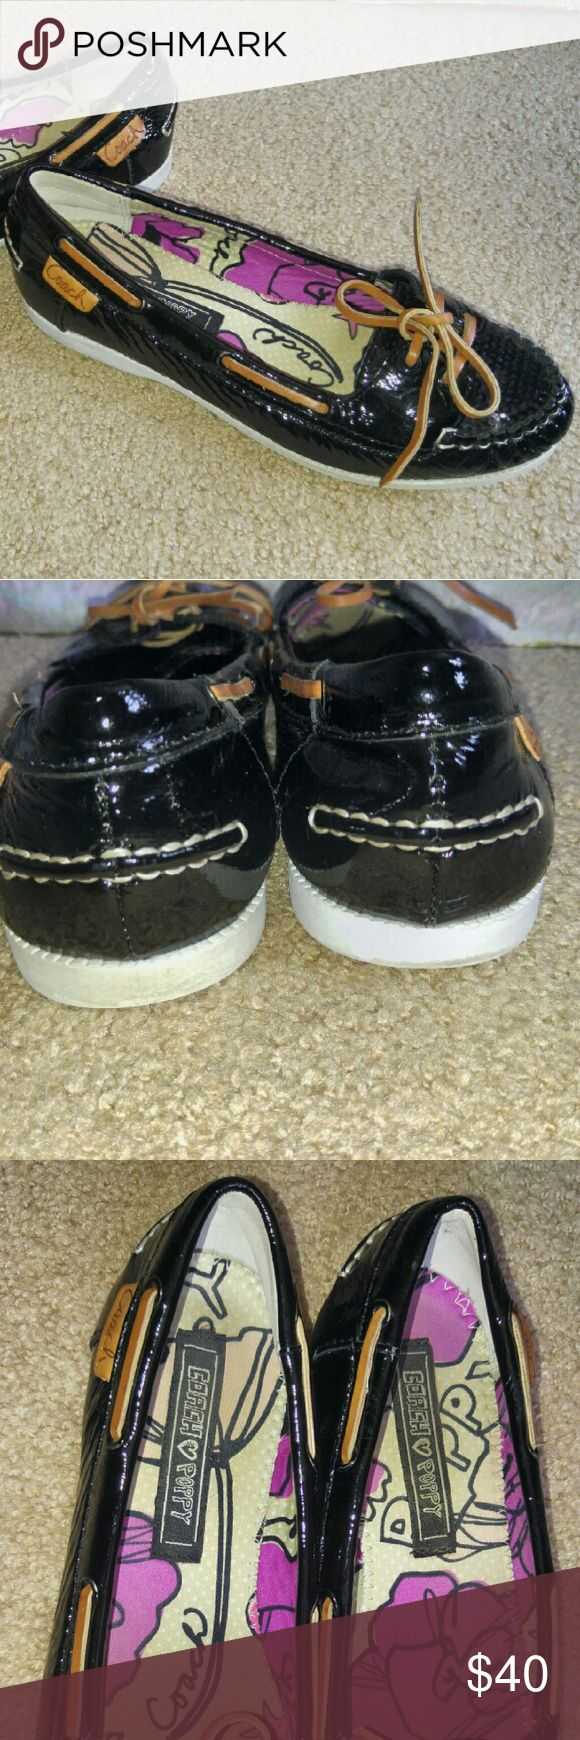 Coach Poppy Black Boat Shoes Flats Loafers Coach Poppy black boat shoes/flats/loafers  Size 7  Rubber bottoms  Black on the outside with a white sole and leather tie  Black sequins on toe area  Interior is purple black and cream colors  Lightly worn but in great condition Coach Shoes Flats & Loafers